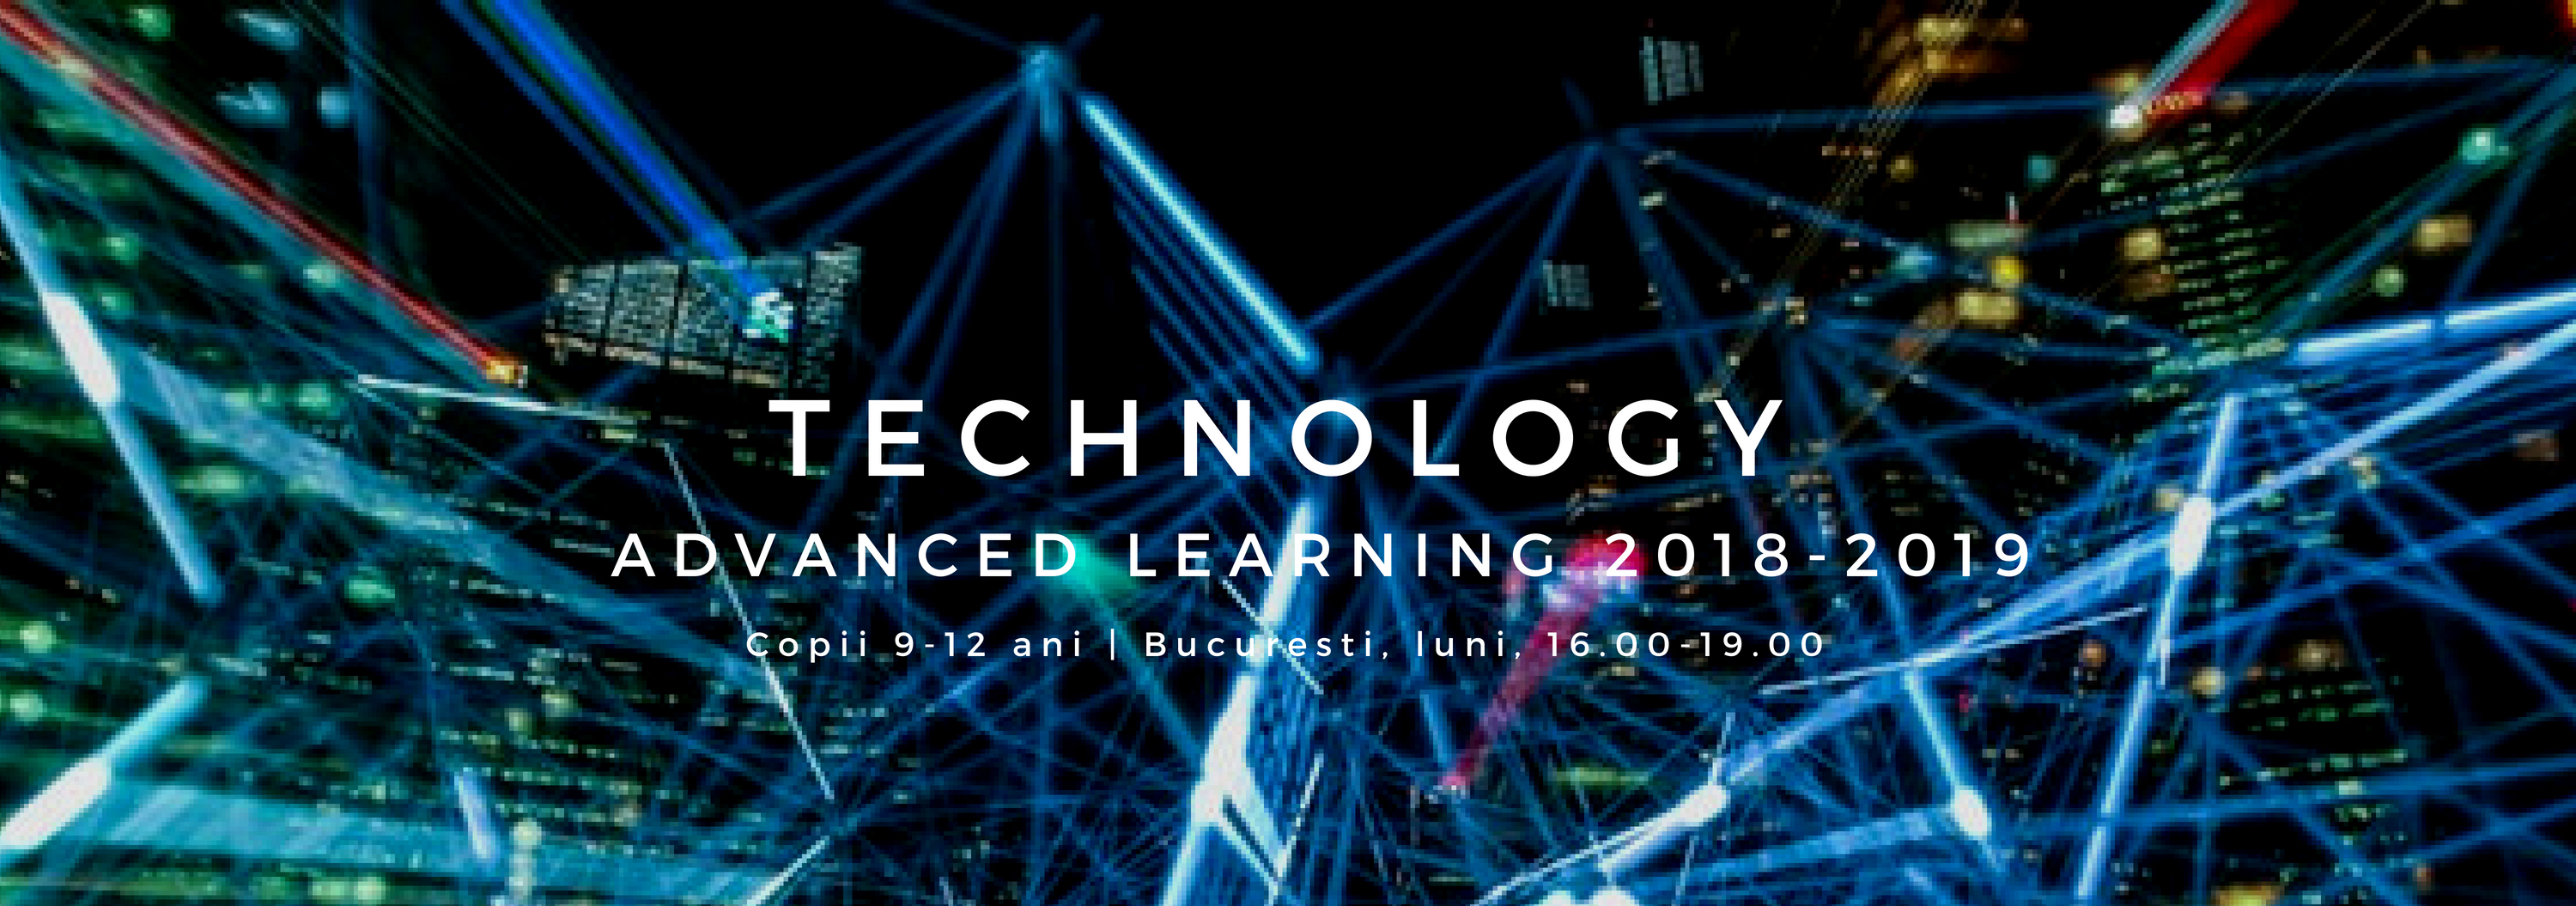 Technology Advanced Learning